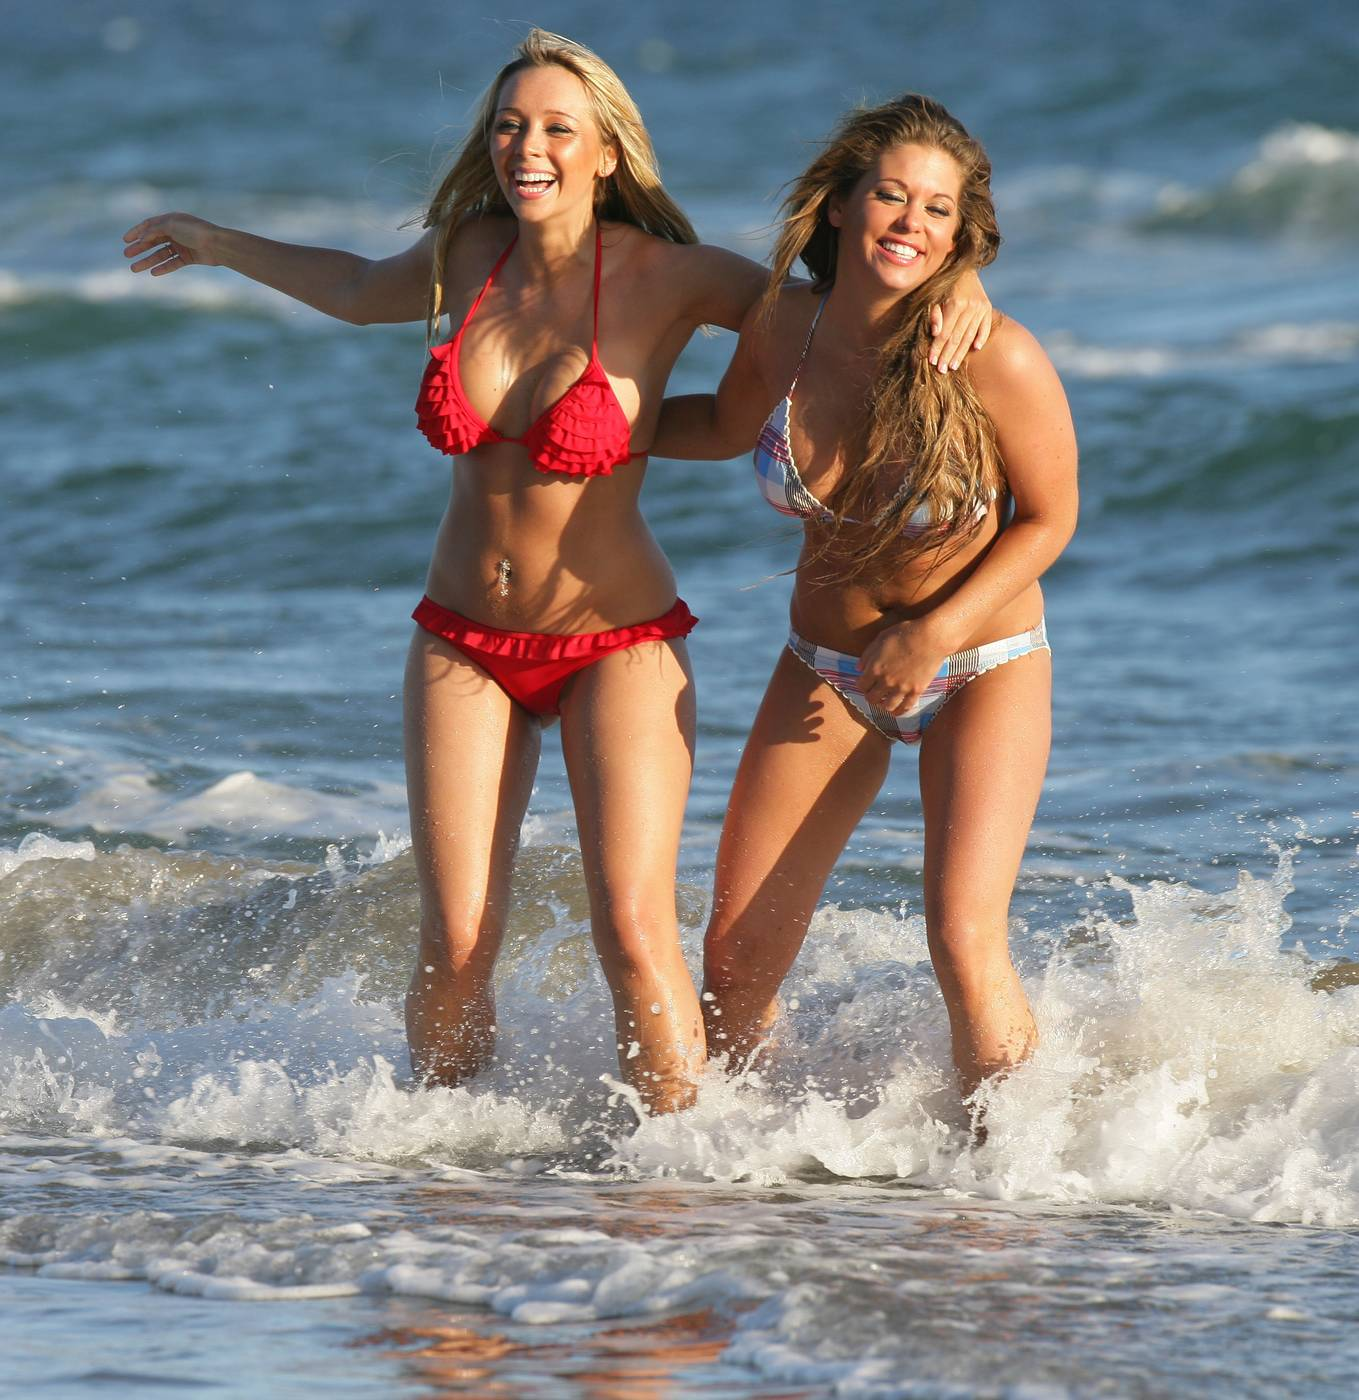 Cute Wallpapers Of Couples With Quotes Bianca Gascoigne And Charlotte Mears Marbella Bikini Quot C